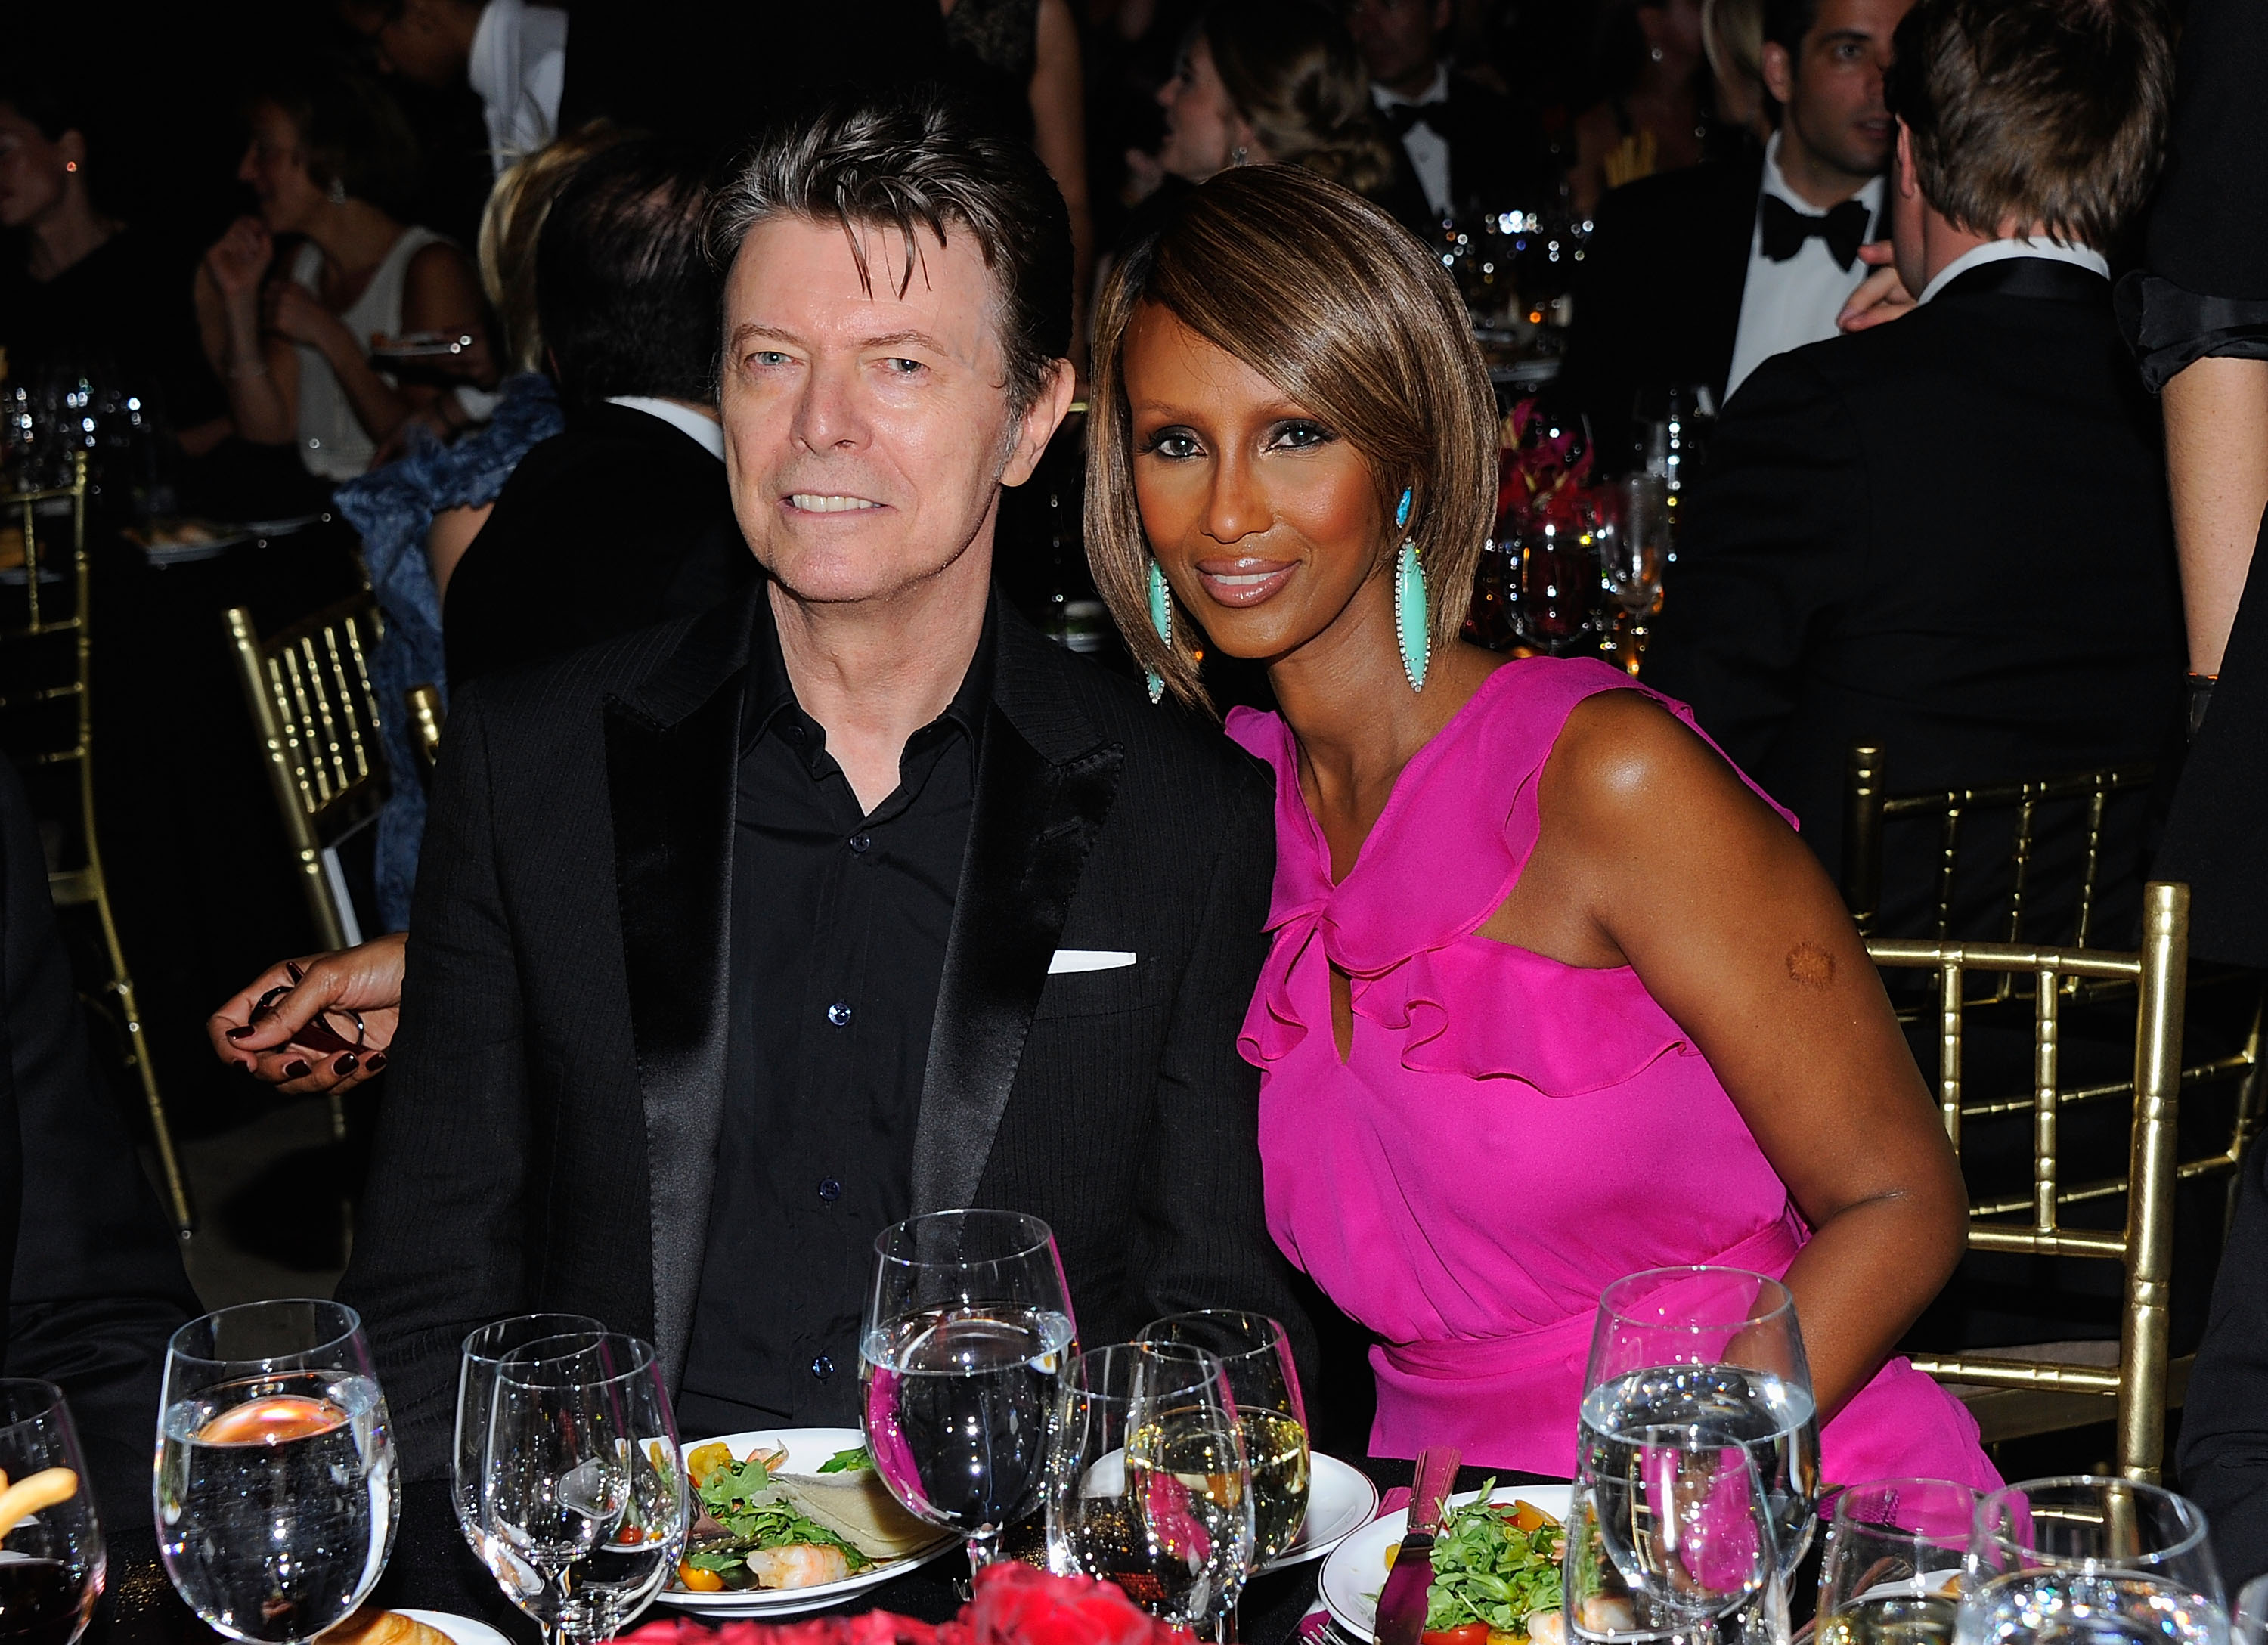 David Bowie and Iman are seen on April 28, 2011 in New York City.